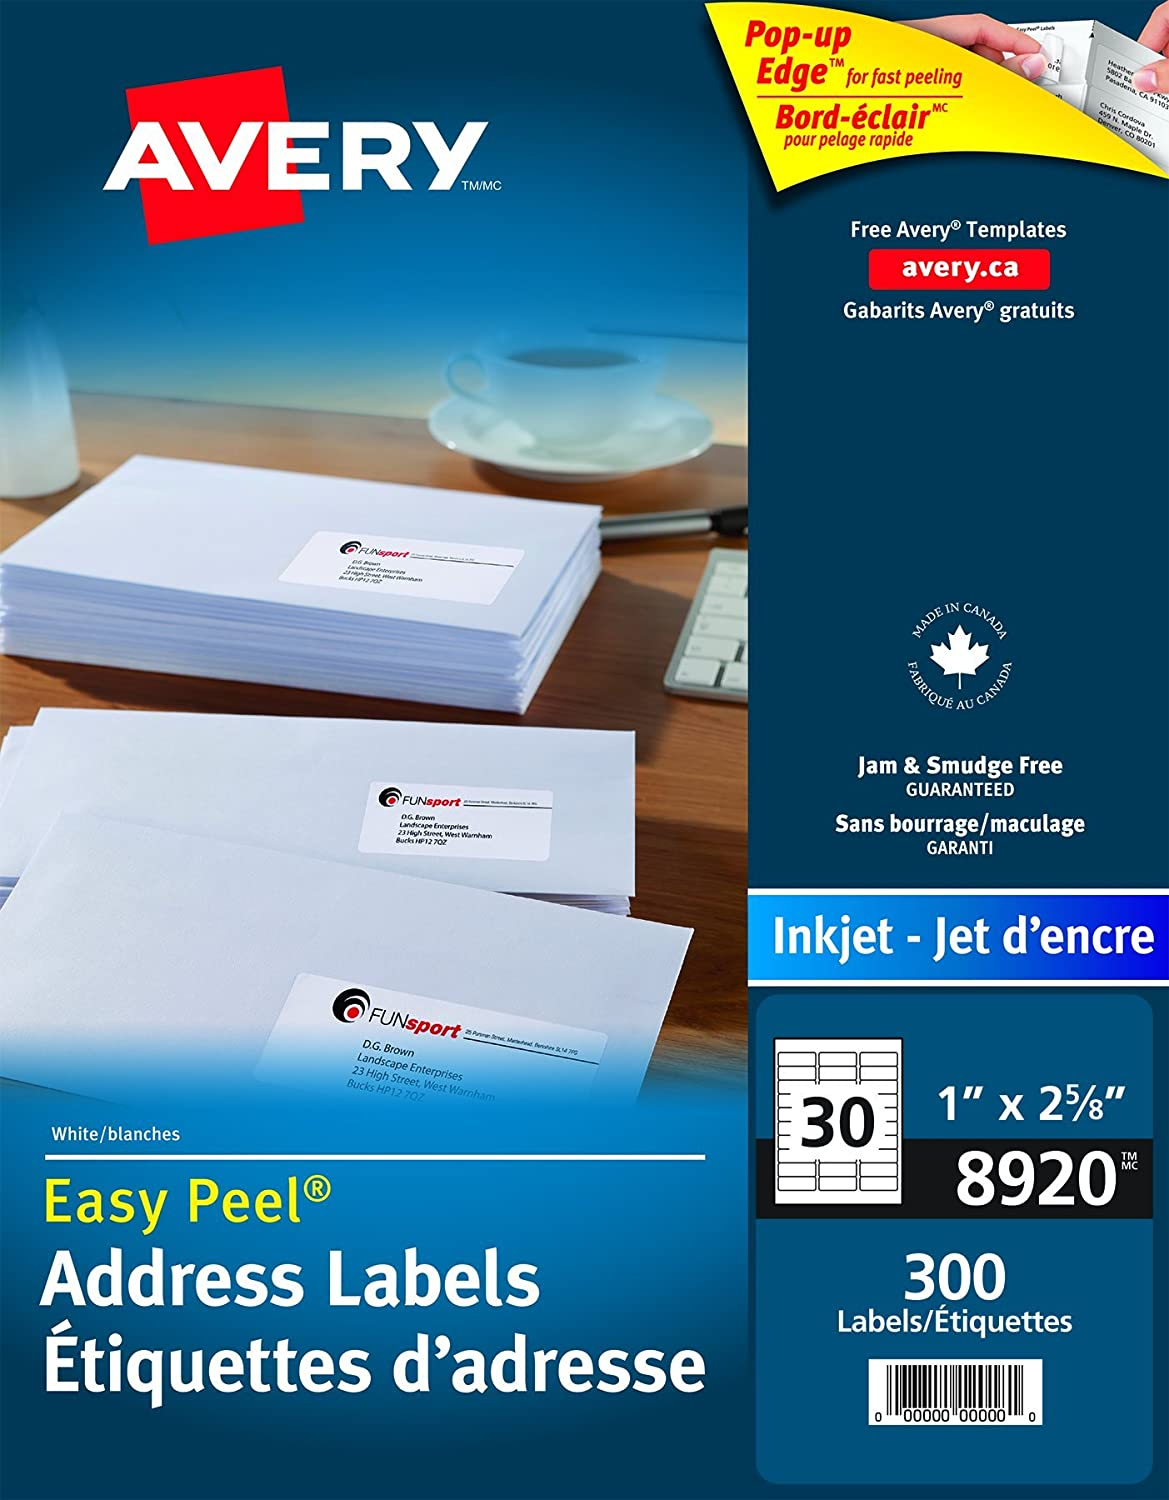 Avery Address Labels with Easy Peel for Inkjet Printers, 1 x 2-5/8, White, Rectangle, 750 Labels, Permanent (8160) Made in Canada 1 x 2-5/8 67933081605